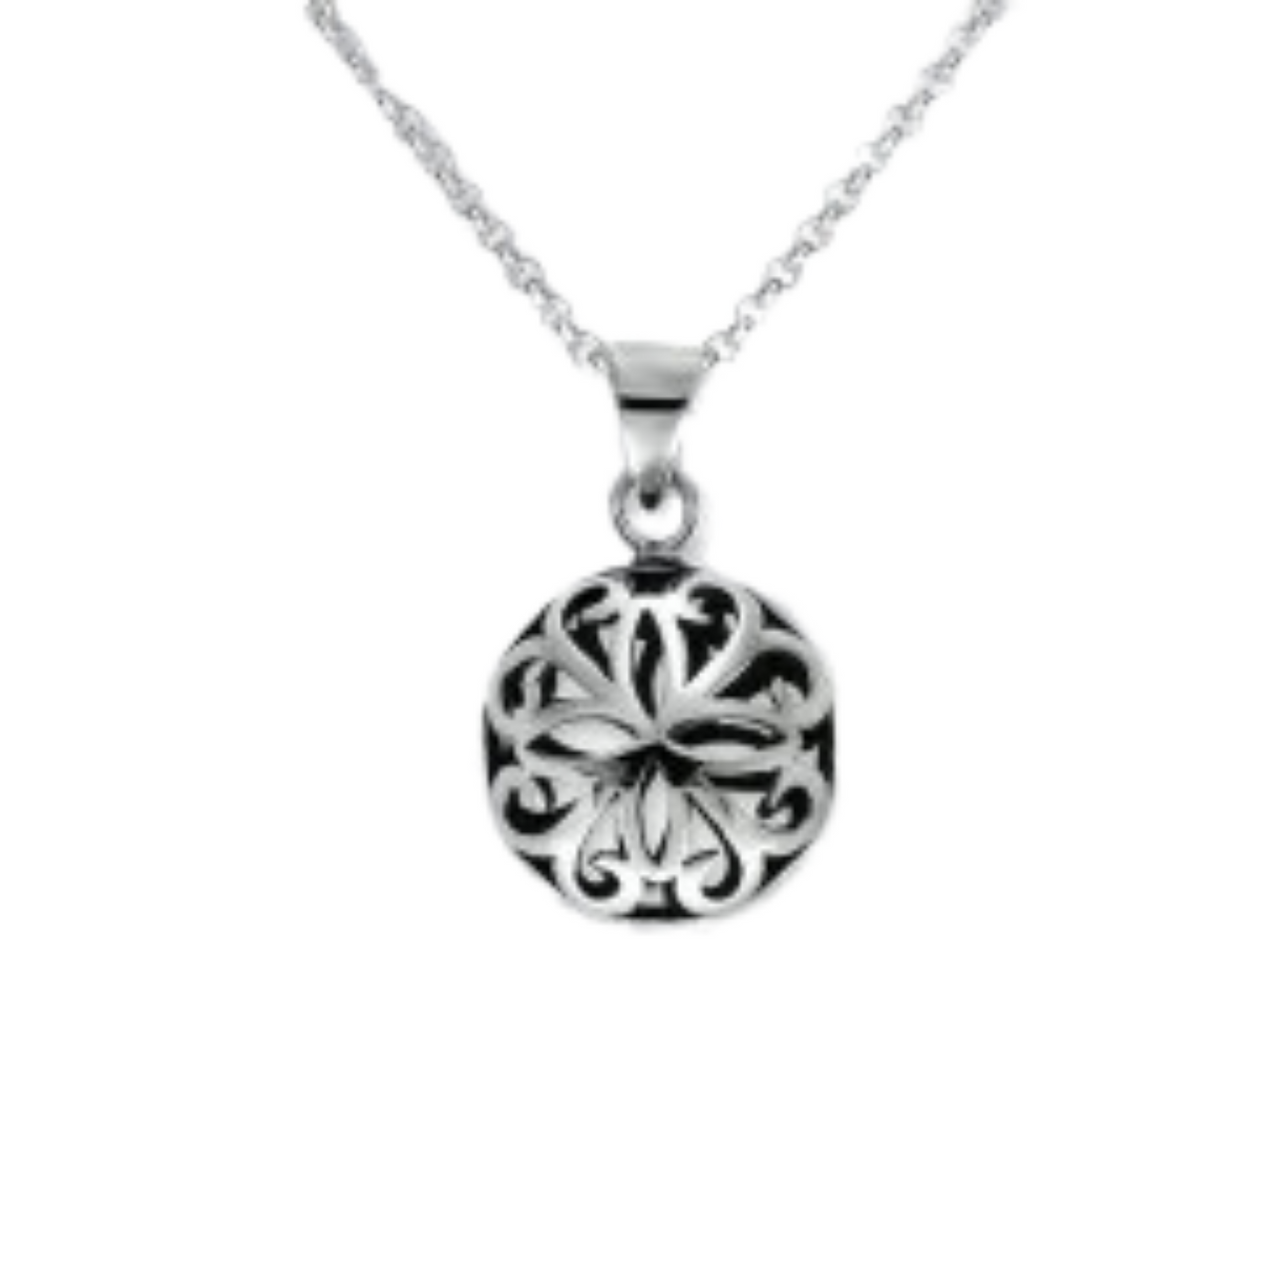 Sterling Silver 3D Filigree Pendant